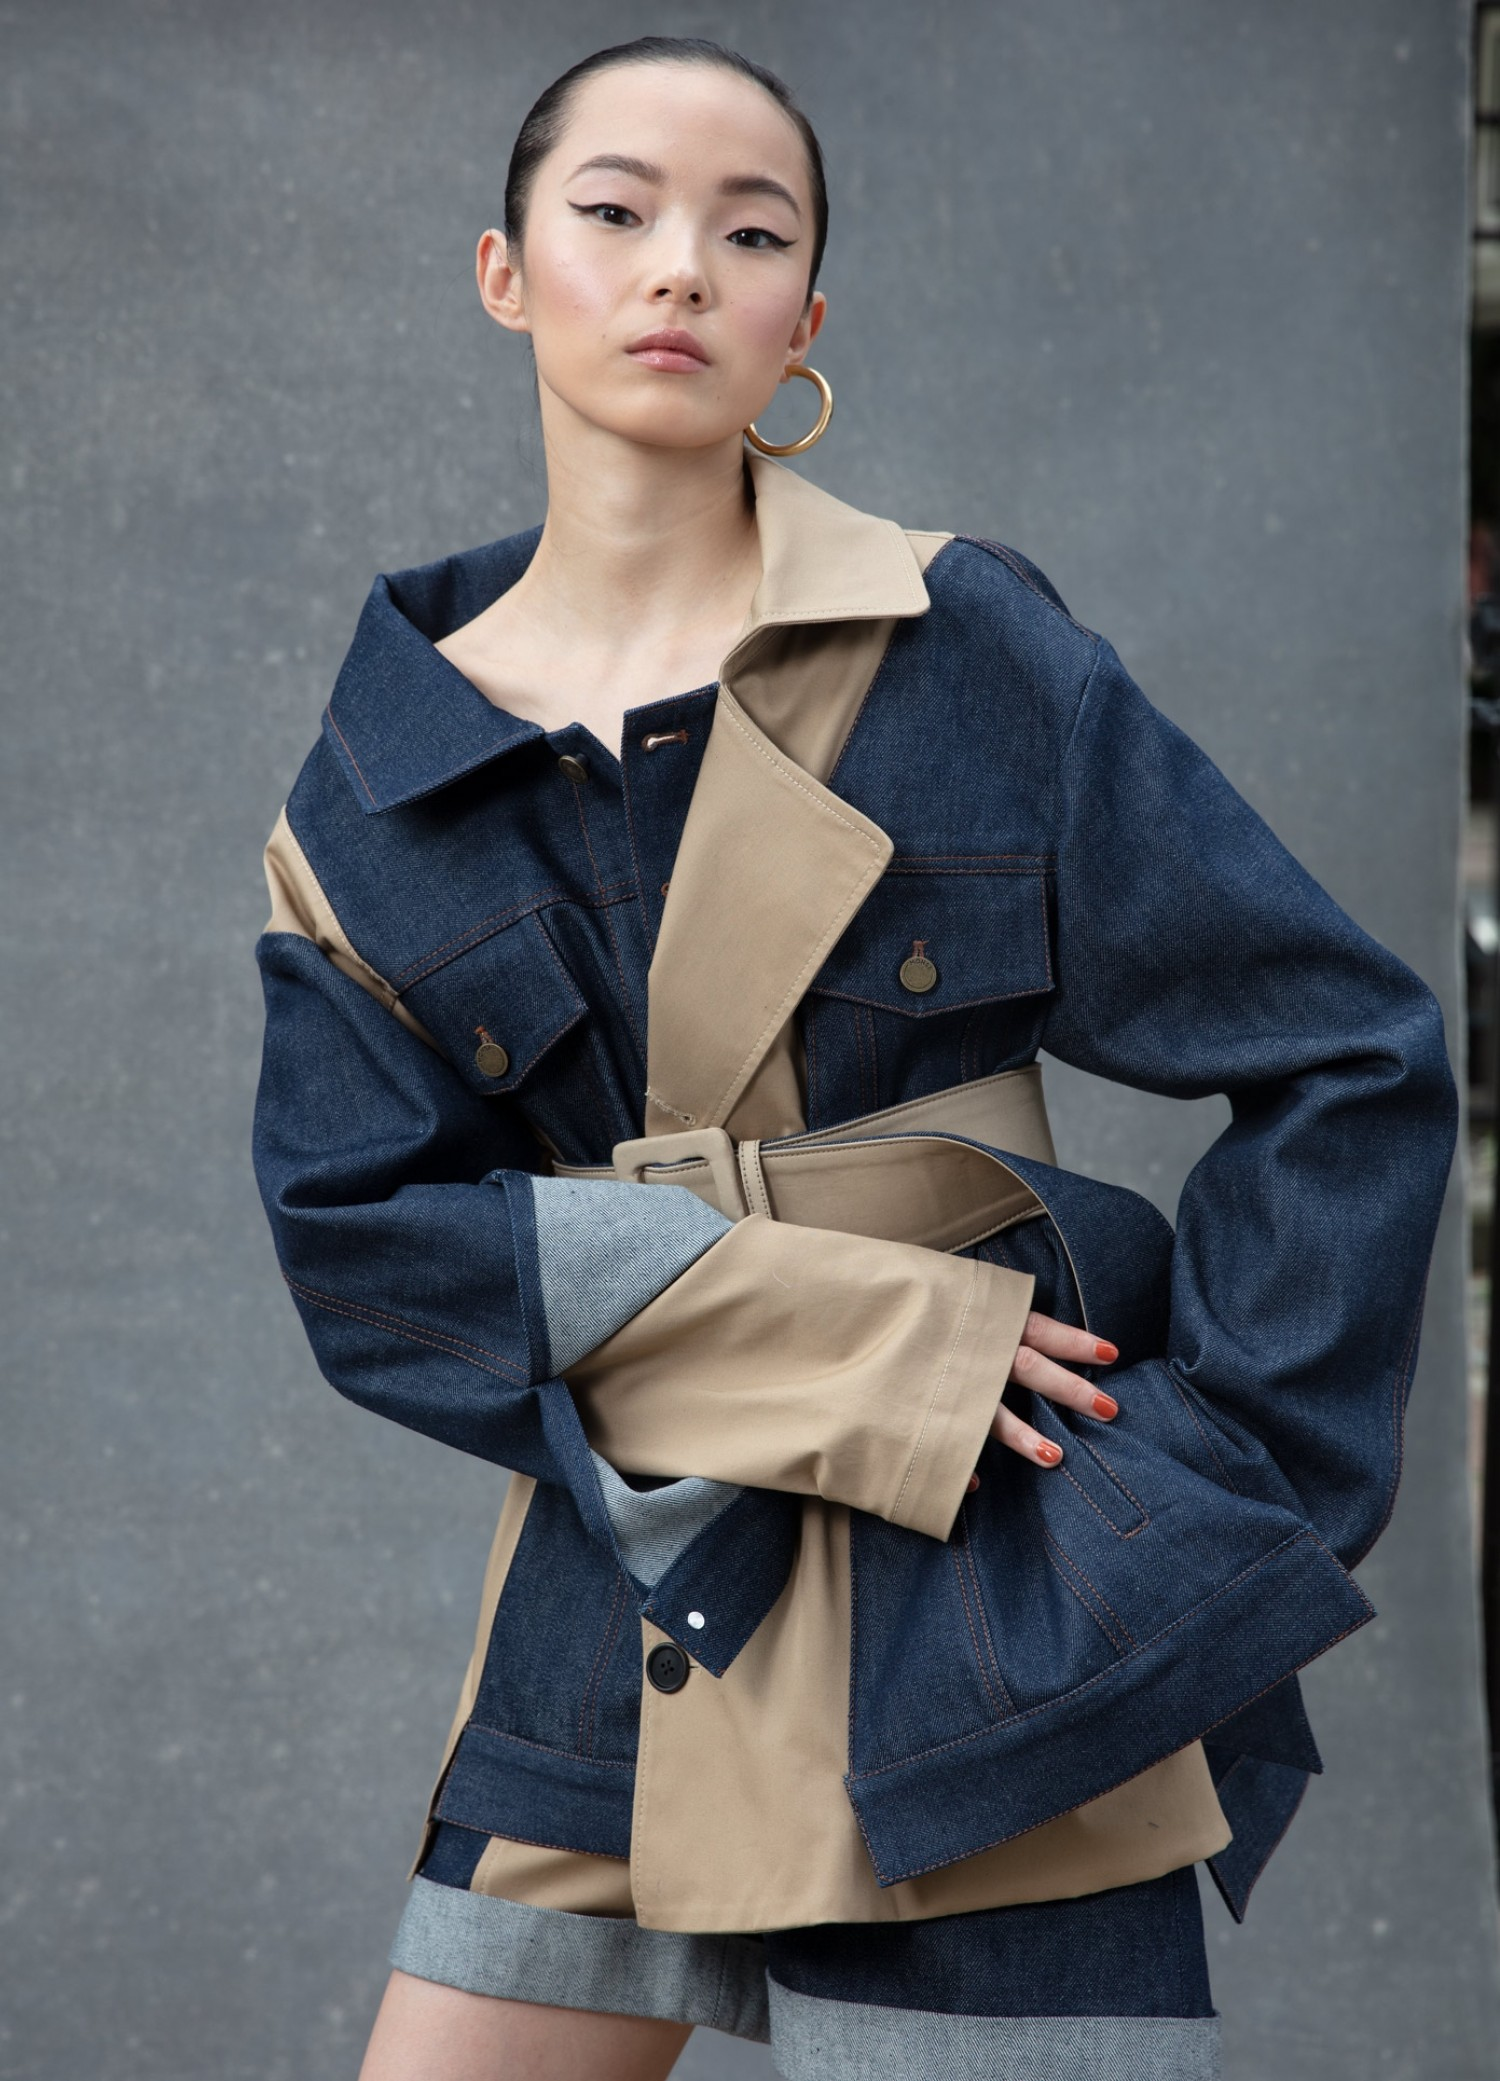 MONSE Belted Trench and Denim Jacket on Model Front View